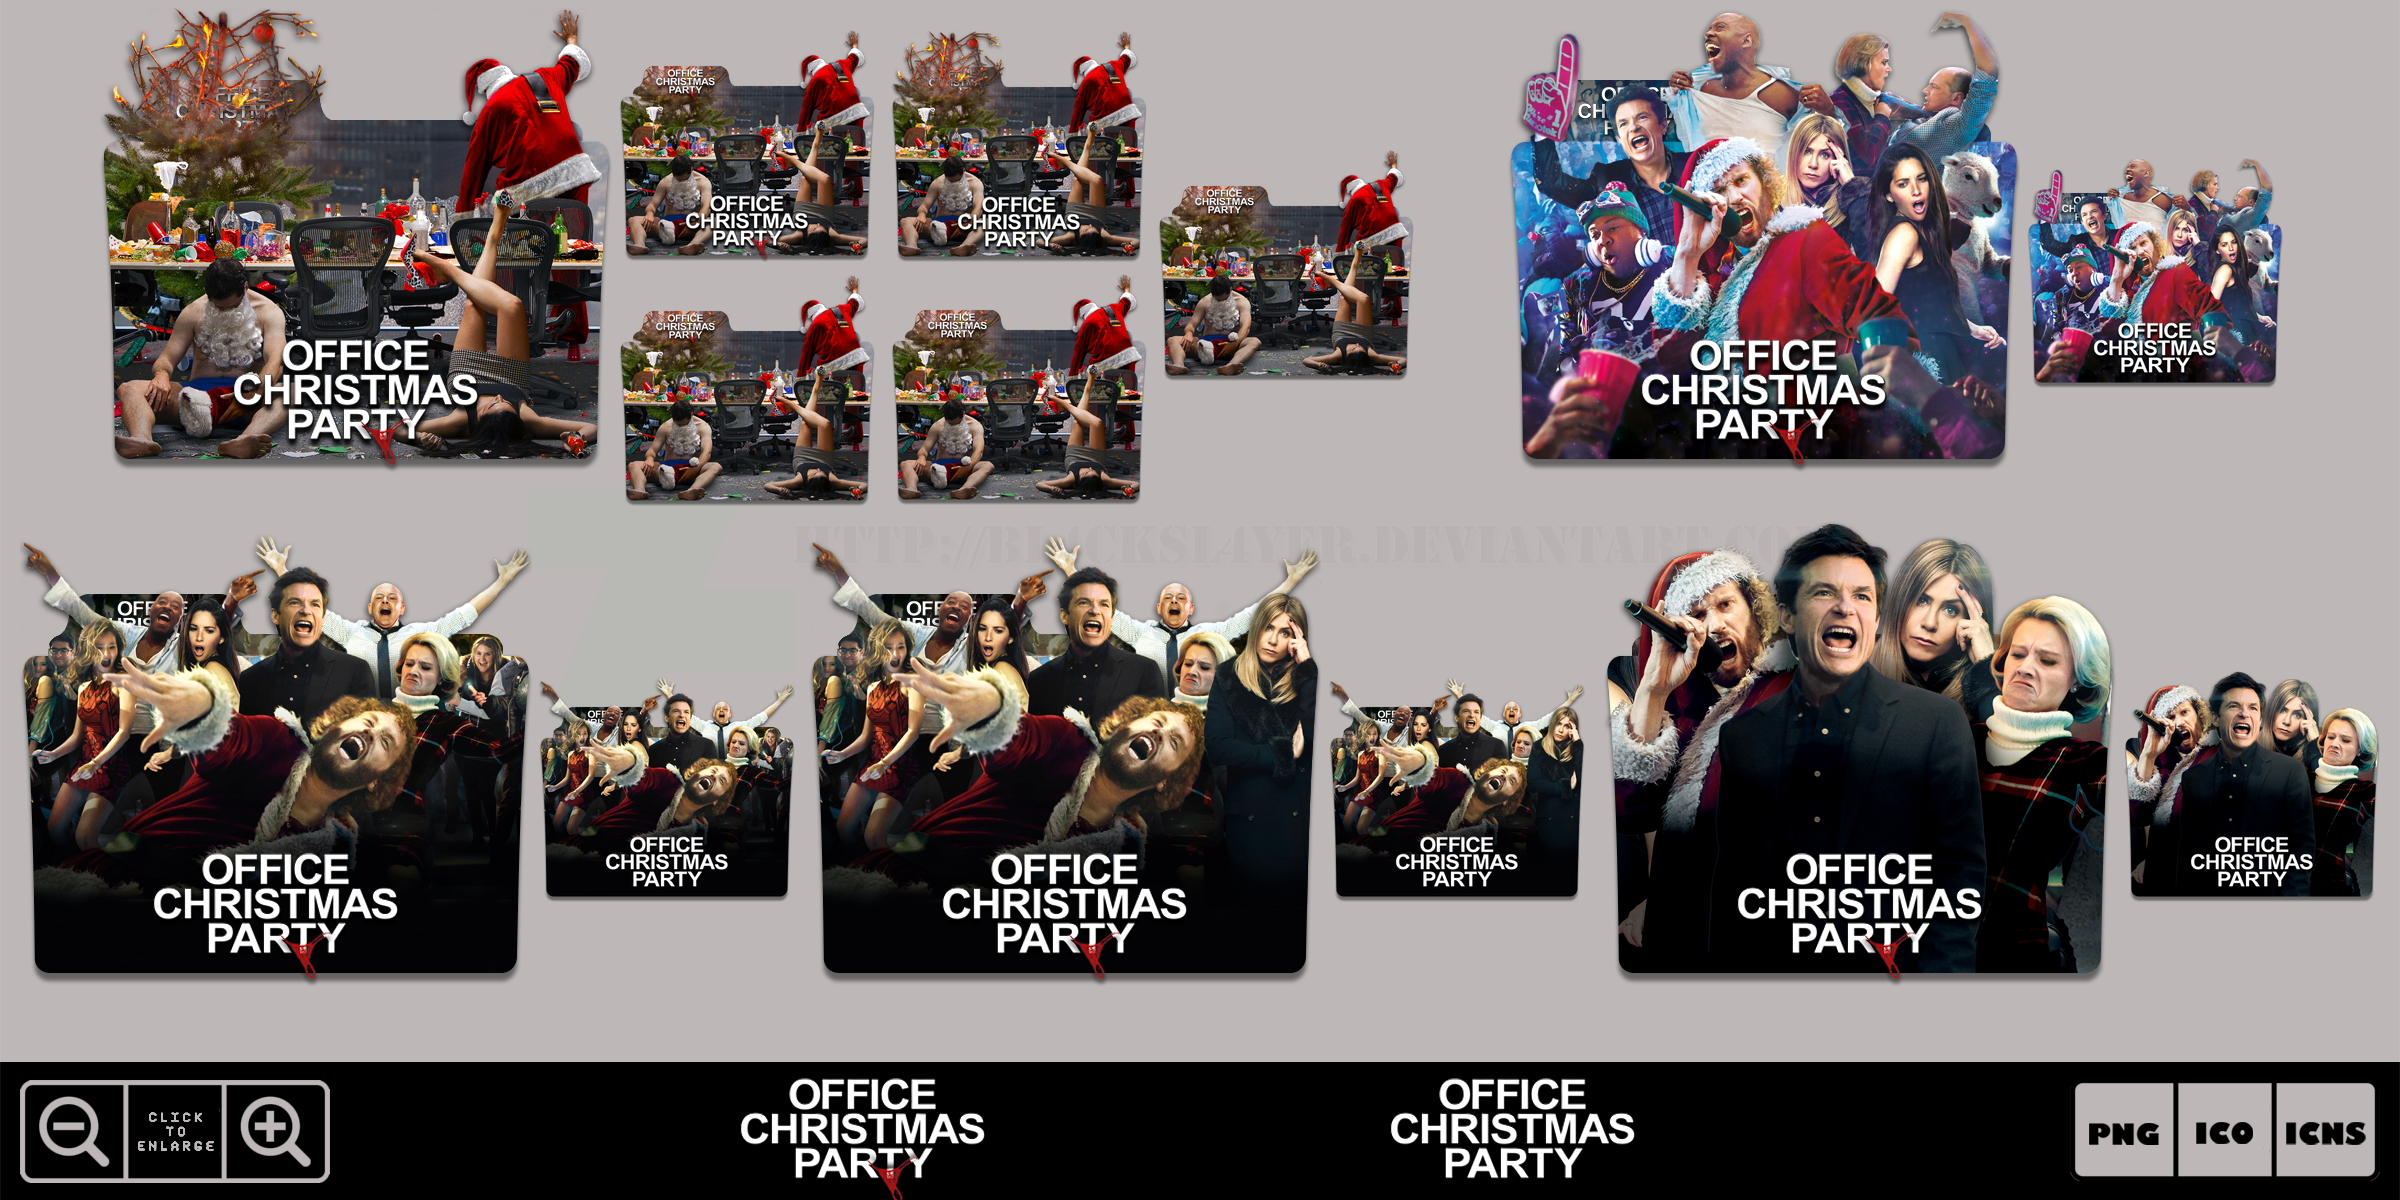 Office Christmas Party (2016) Folder Icon Pack by Bl4CKSL4YER on ...